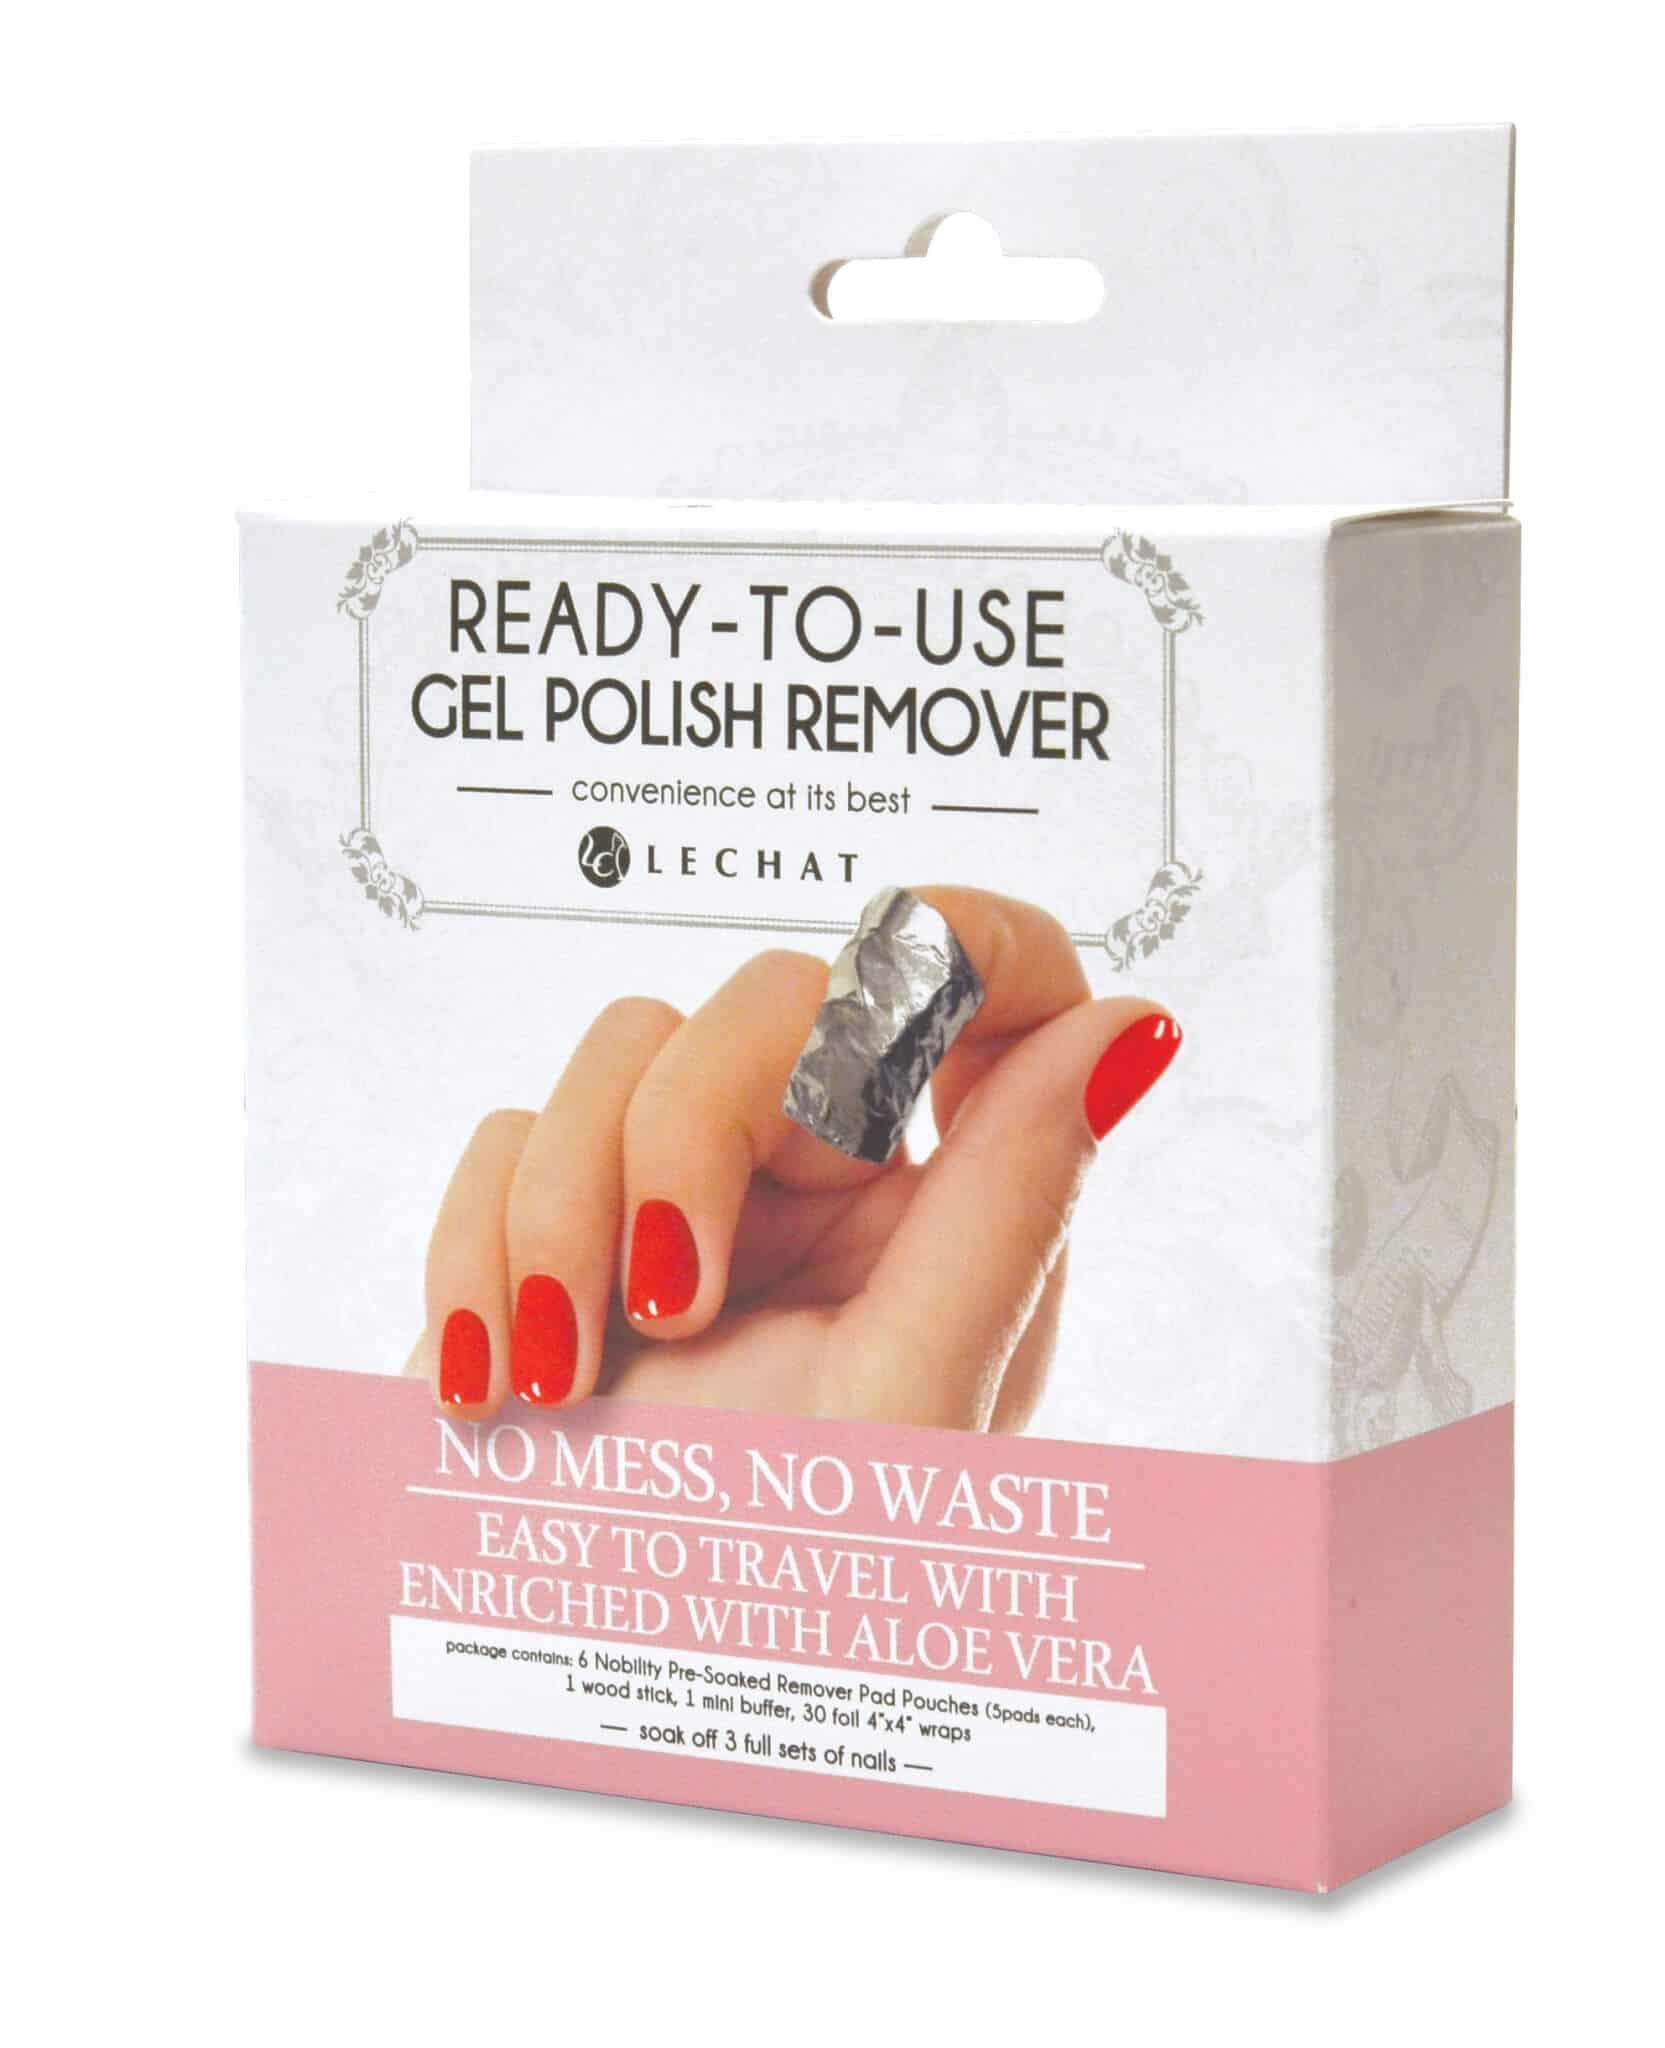 Nobility - Ready-To-Use Gel Polish Remover Pads Box | LeChat Nails